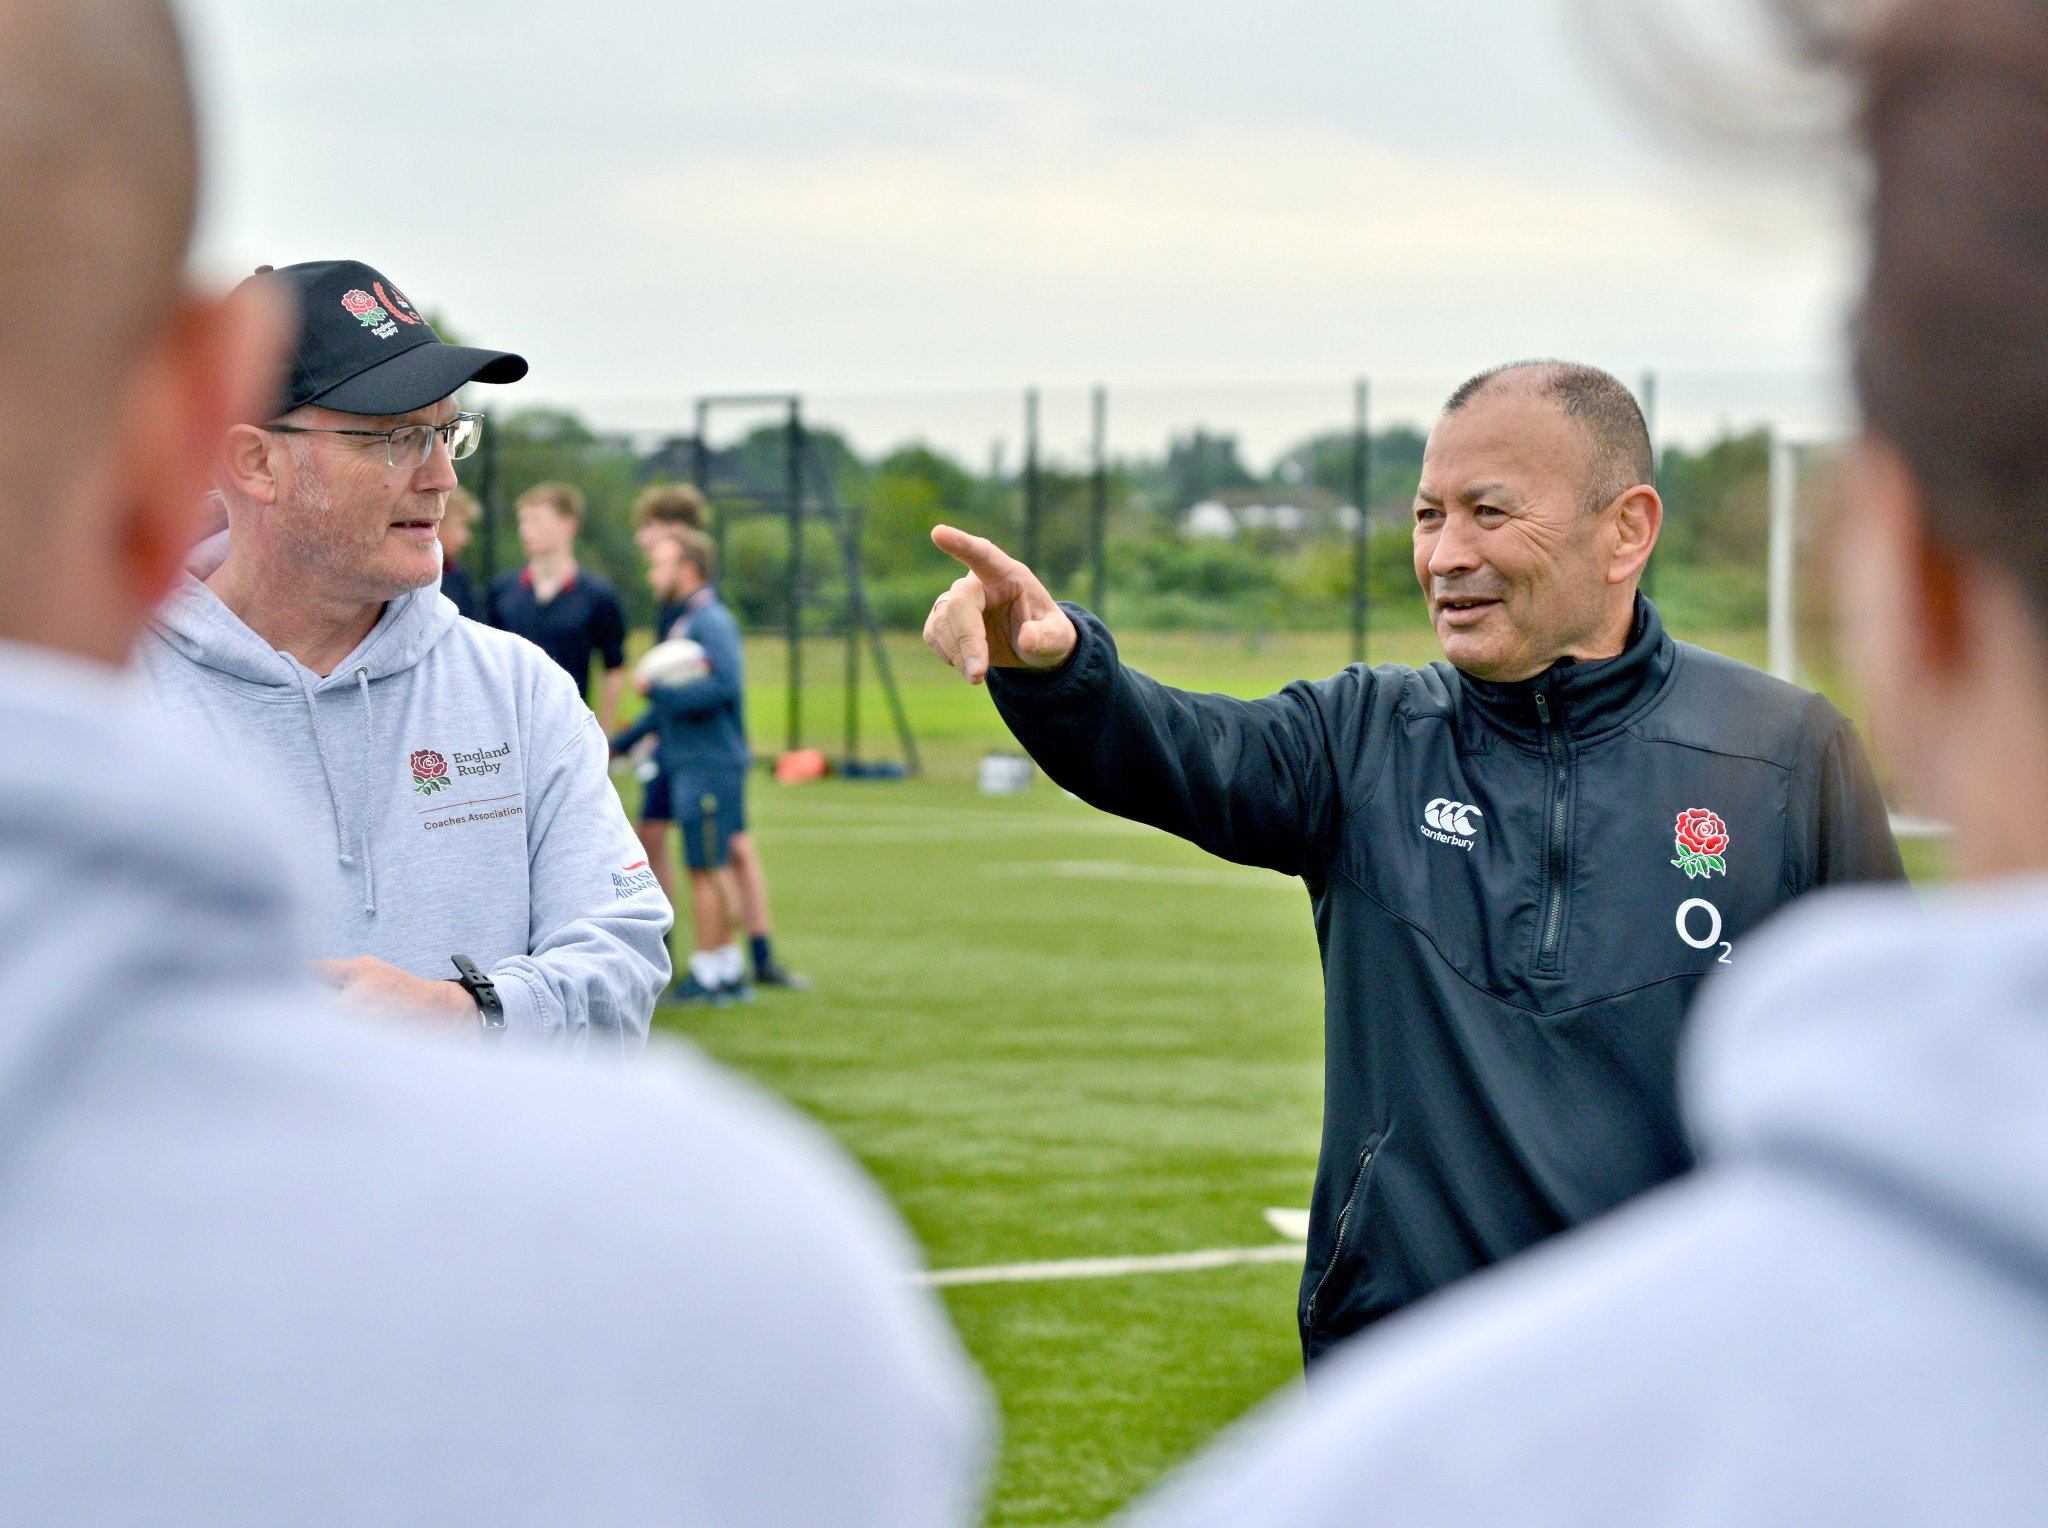 Eddie Jones joined grassroots coaches from across the country as part of the @MitsubishiUK Volunteer Recognition Programme 🙌🌹#CoachingWeek 🙌🌹 https://t.co/v41awt6qXQ